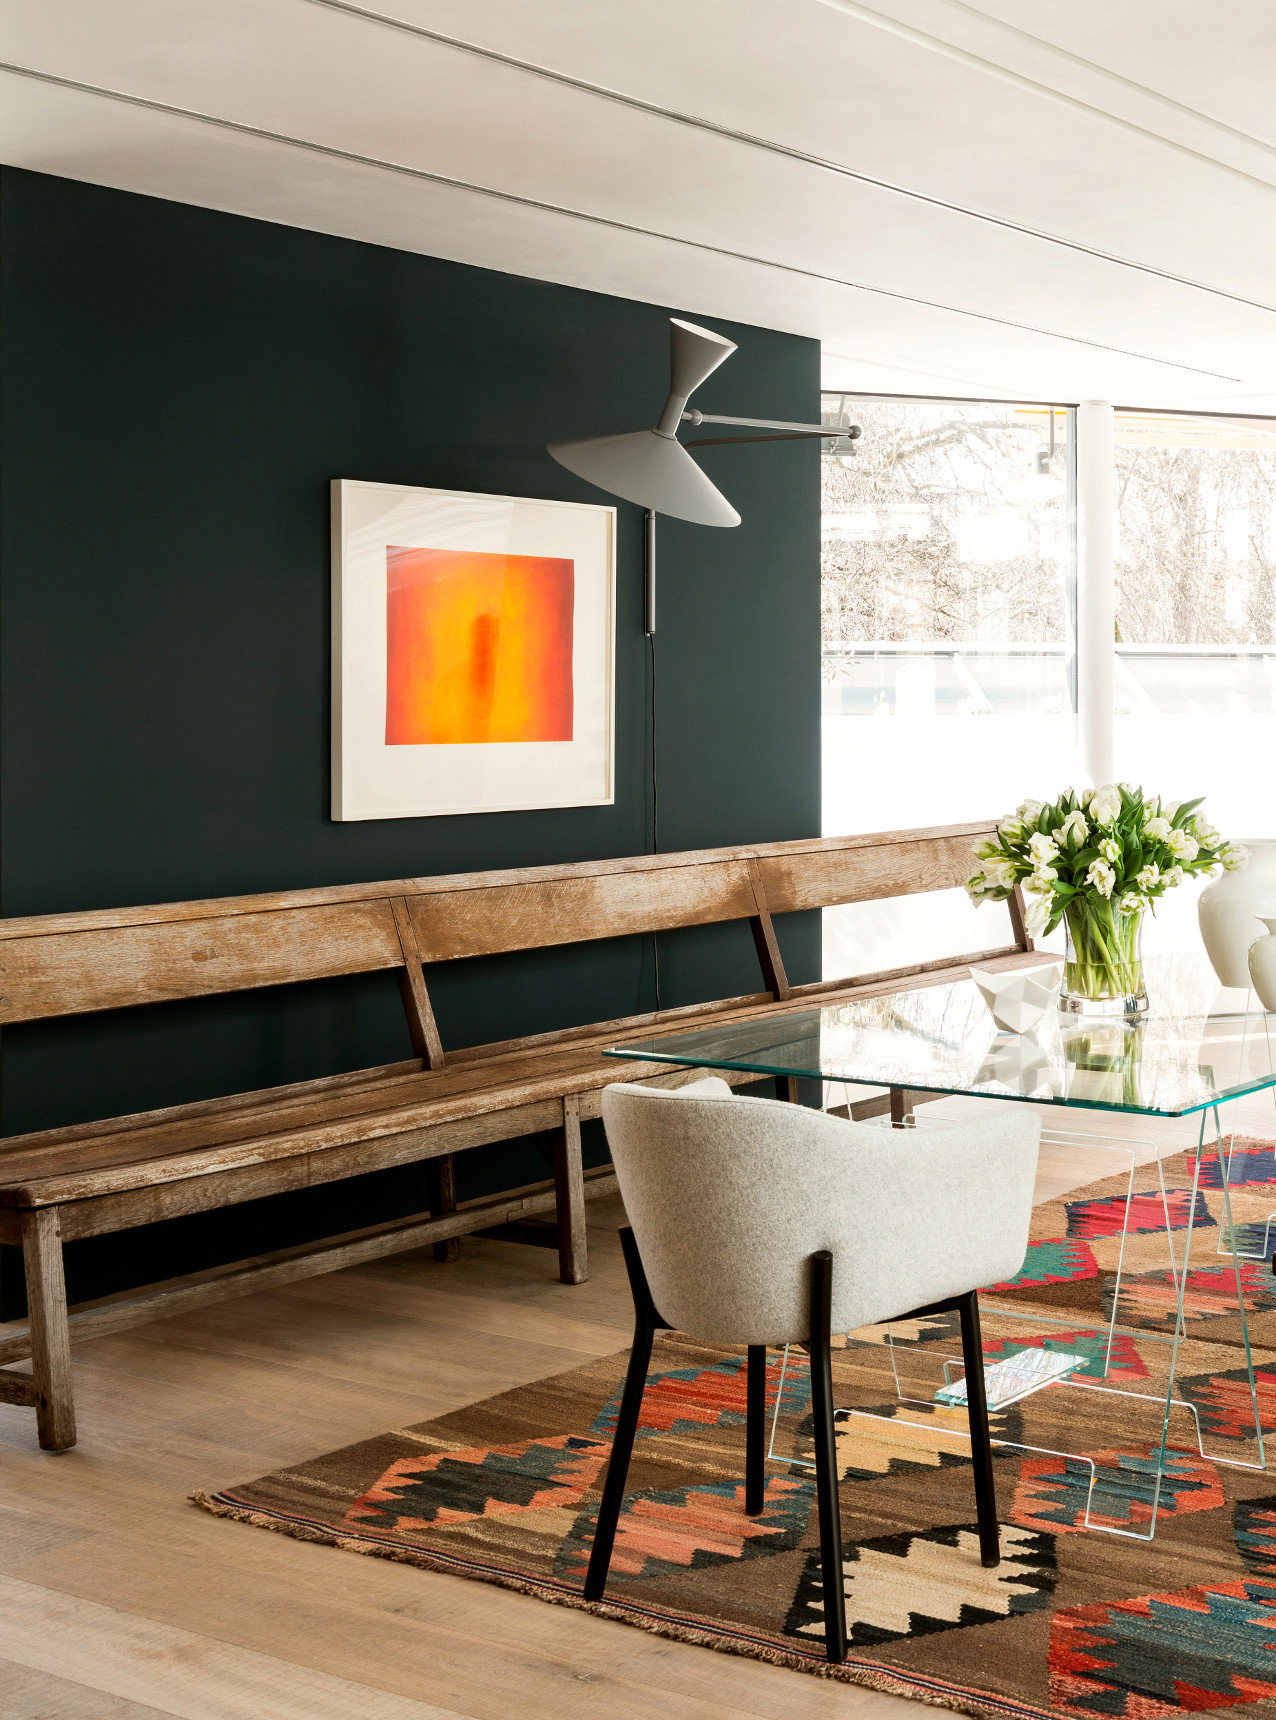 Oak tate skye plank in conran store with long antique wooden bench and glass dining table